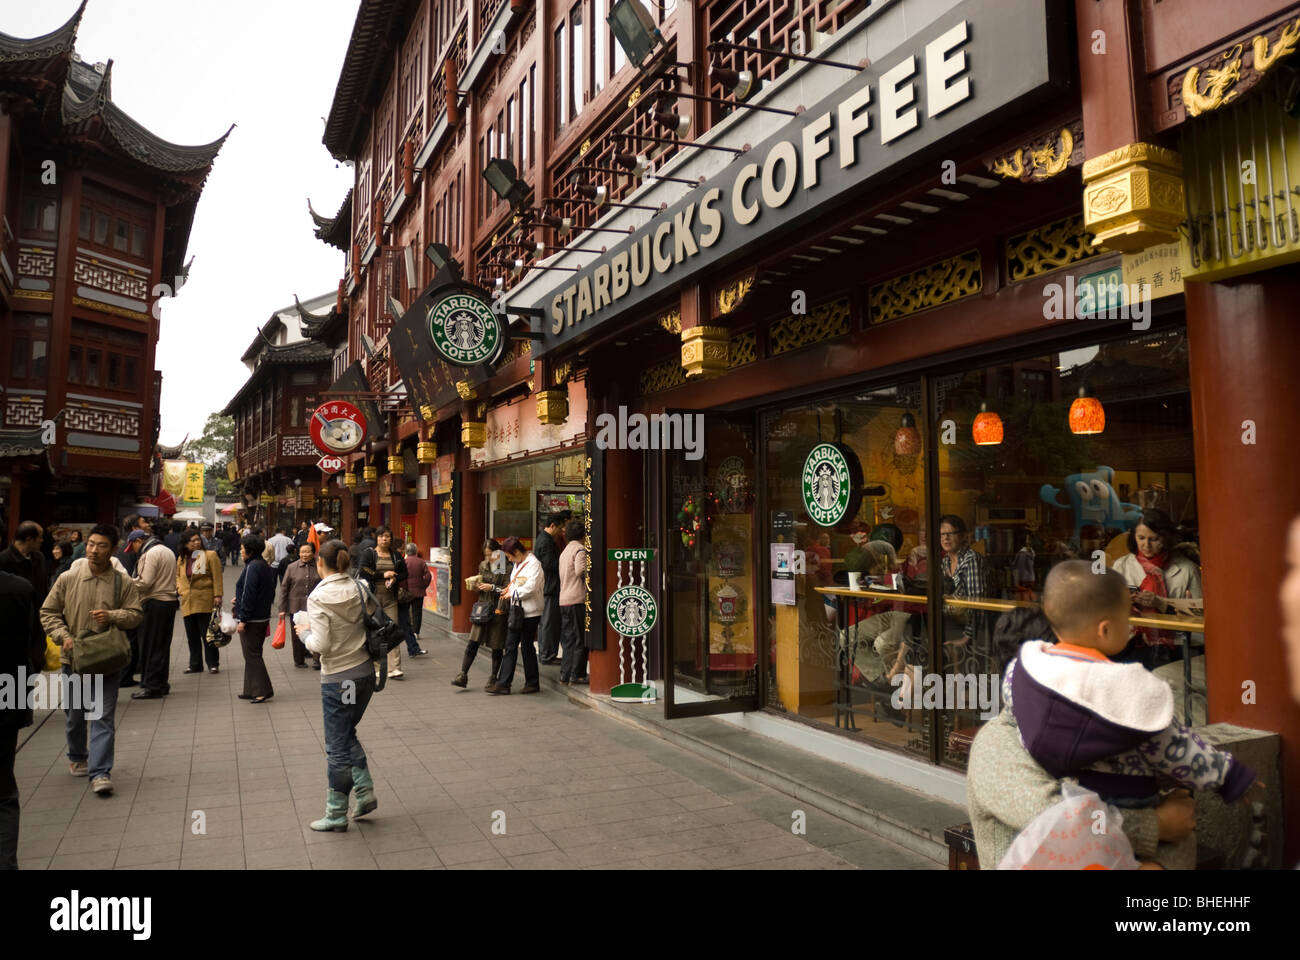 Starbucks Coffee At Yu Garden Bazaar In Shanghai China Asia